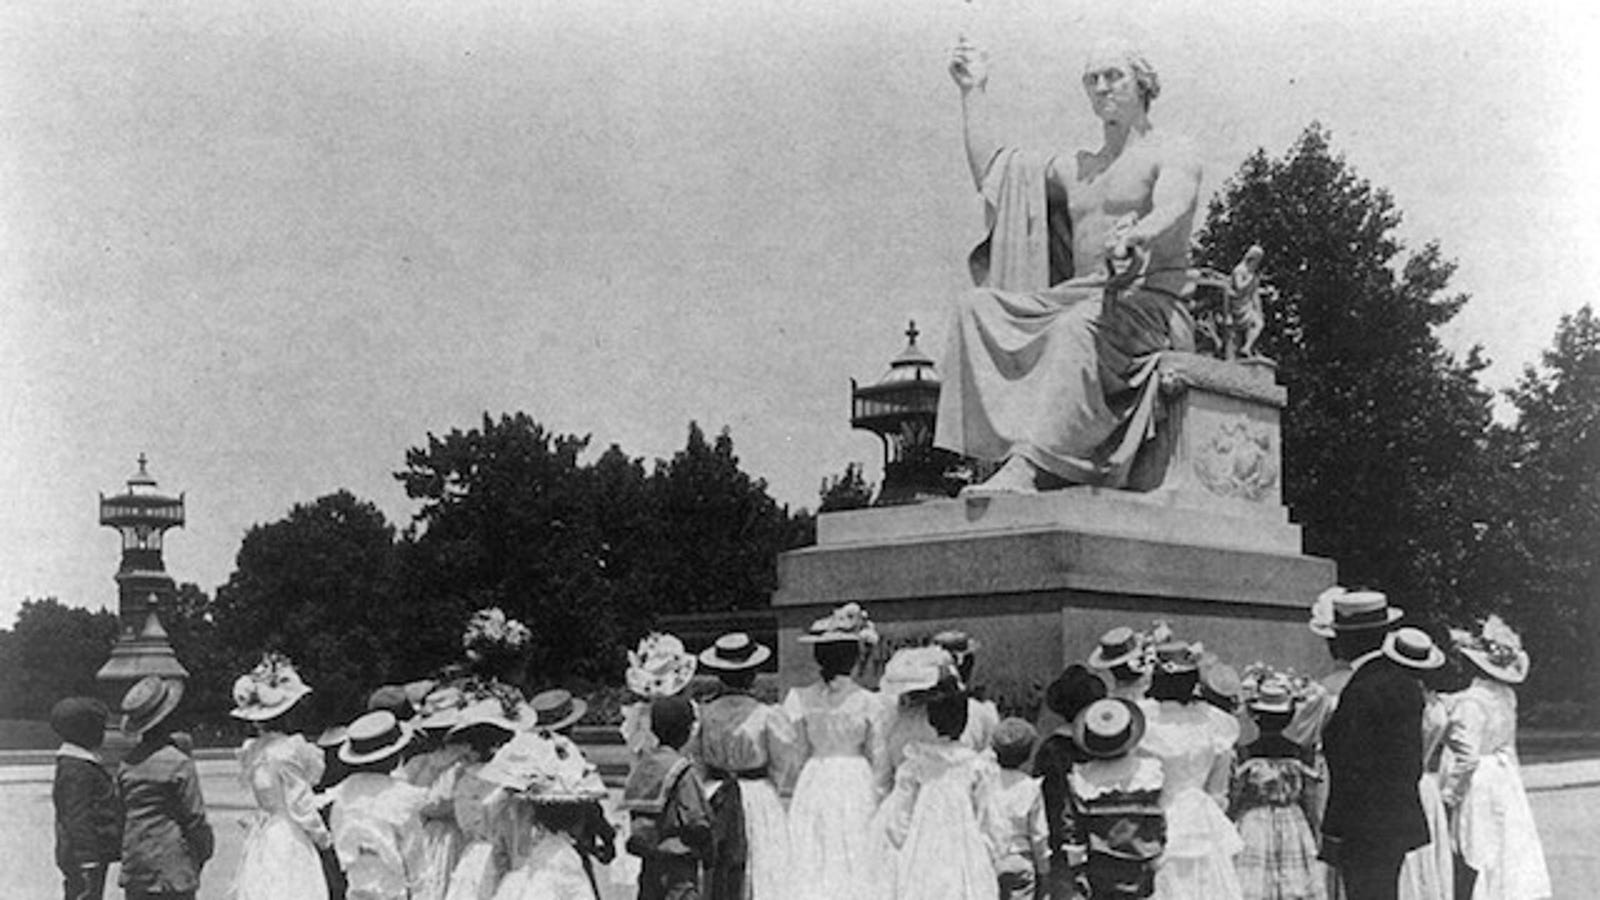 The statue of George Washington deemed too risqué for